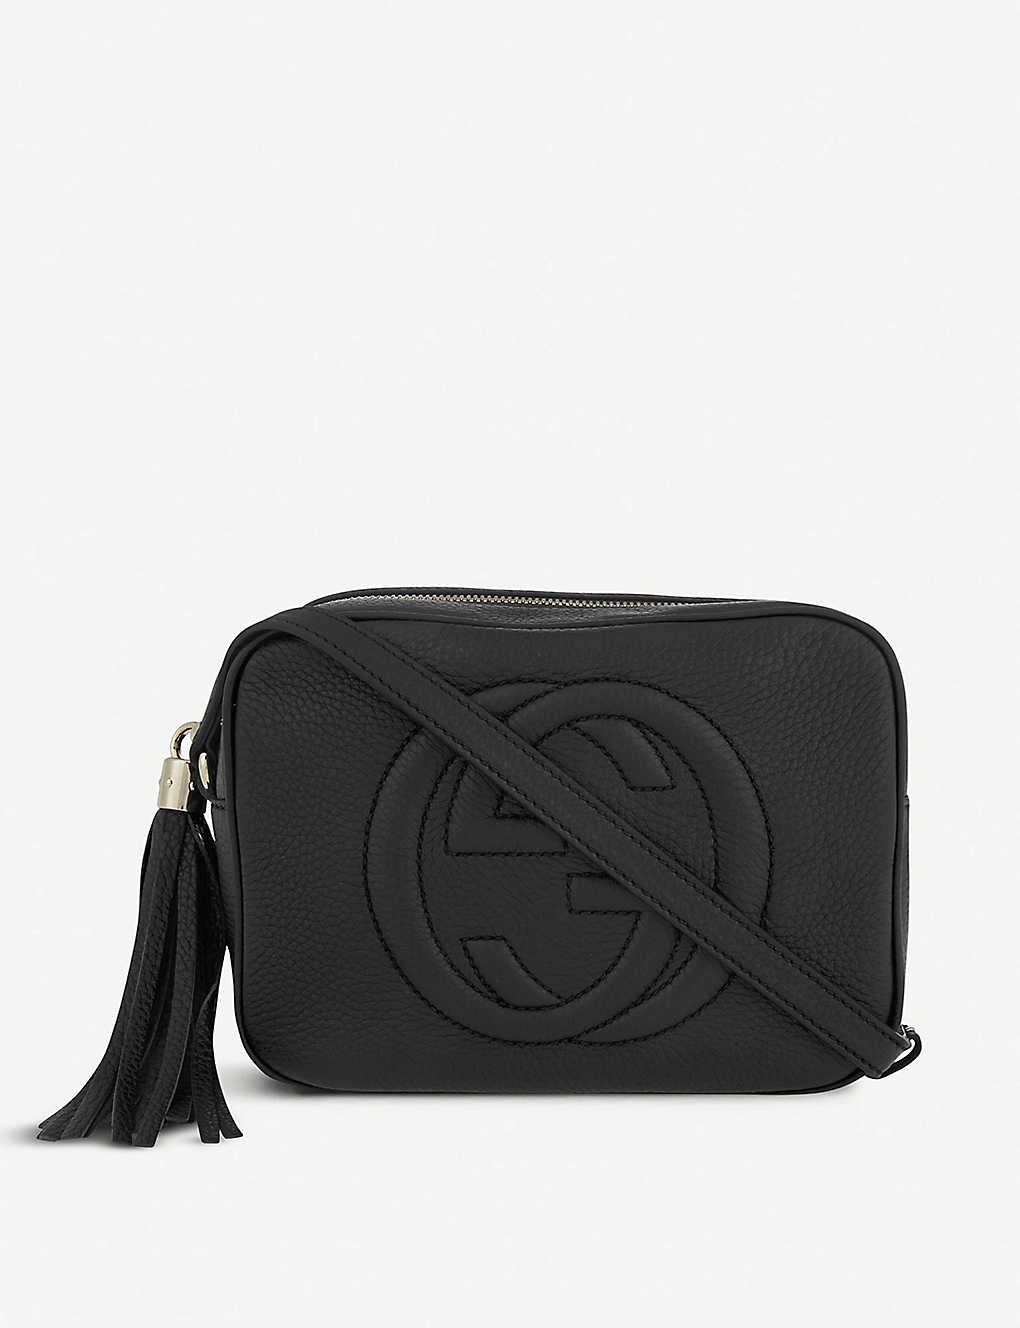 9ffa72226e66 GUCCI - Soho leather cross-body bag | Selfridges.com